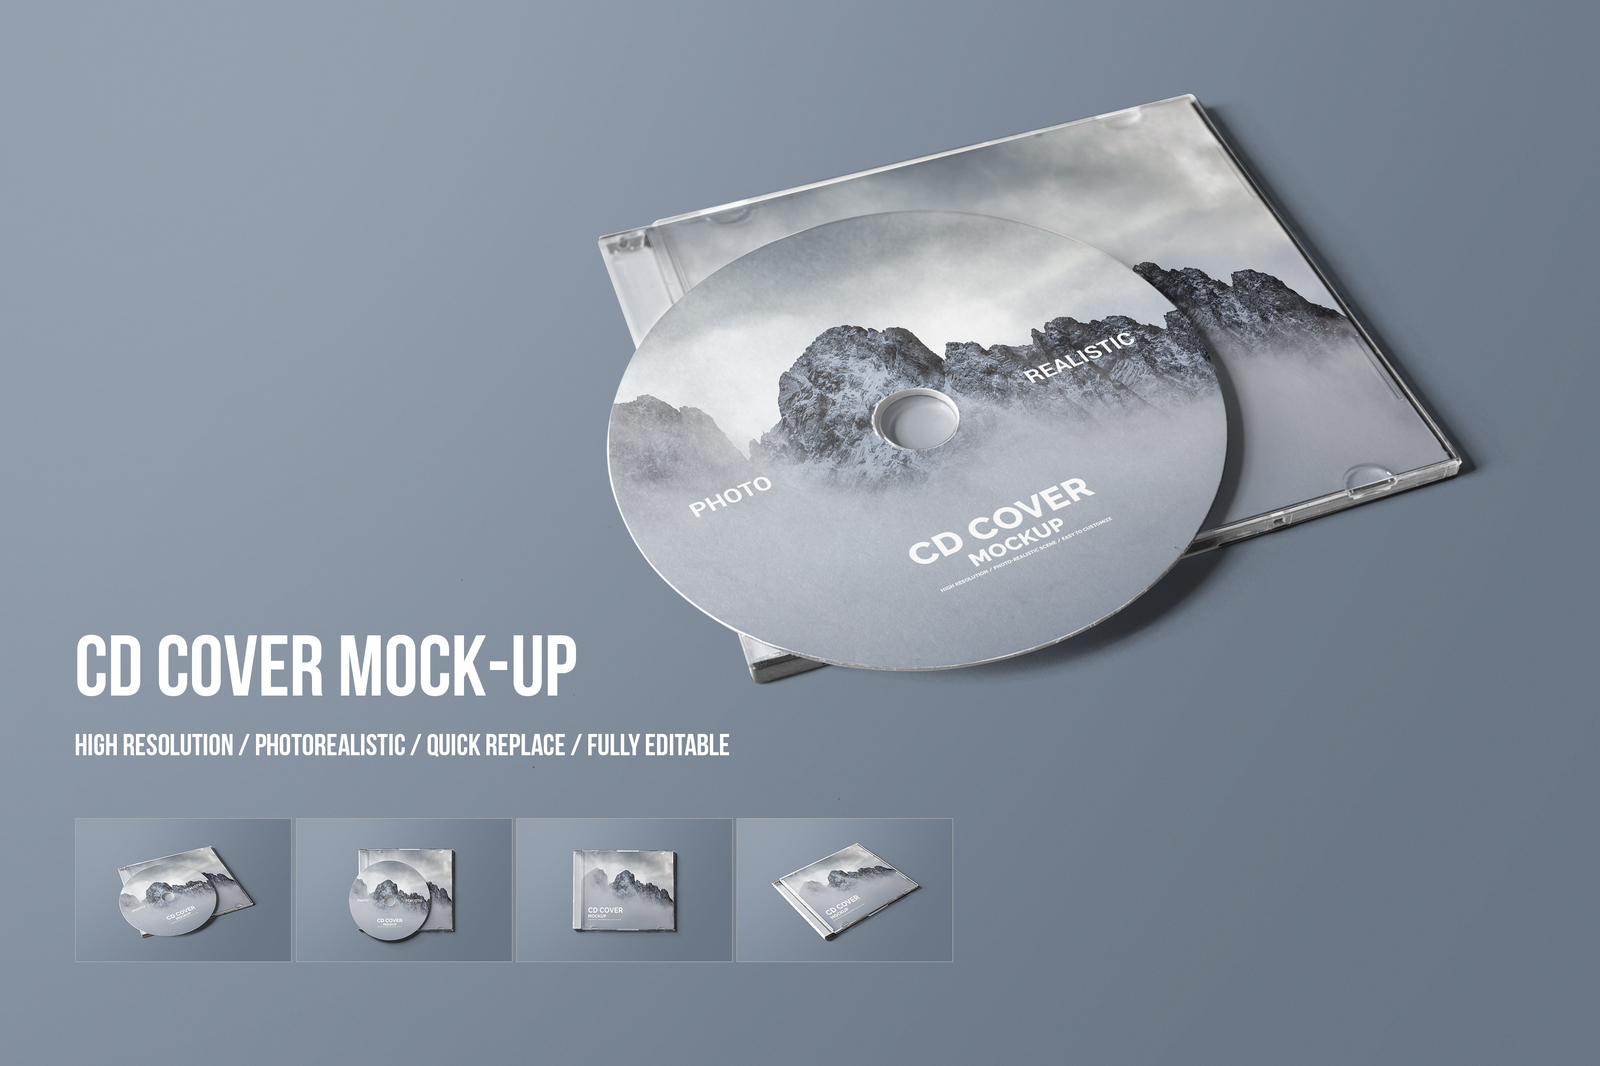 Download Cd Cover Mockup In Packaging Mockups On Yellow Images Creative Store